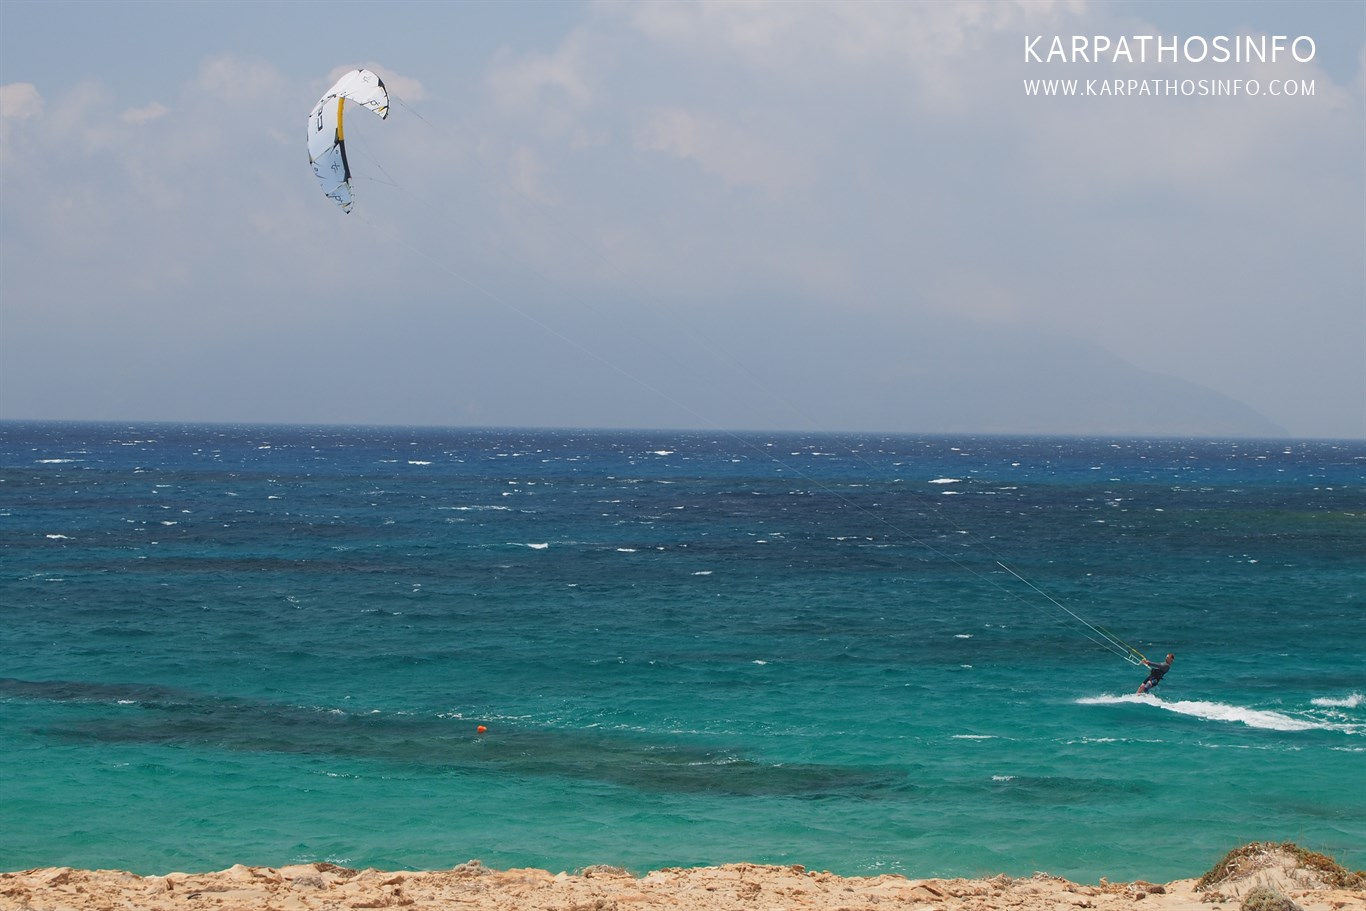 Kitesurf in Karpathos, Greece